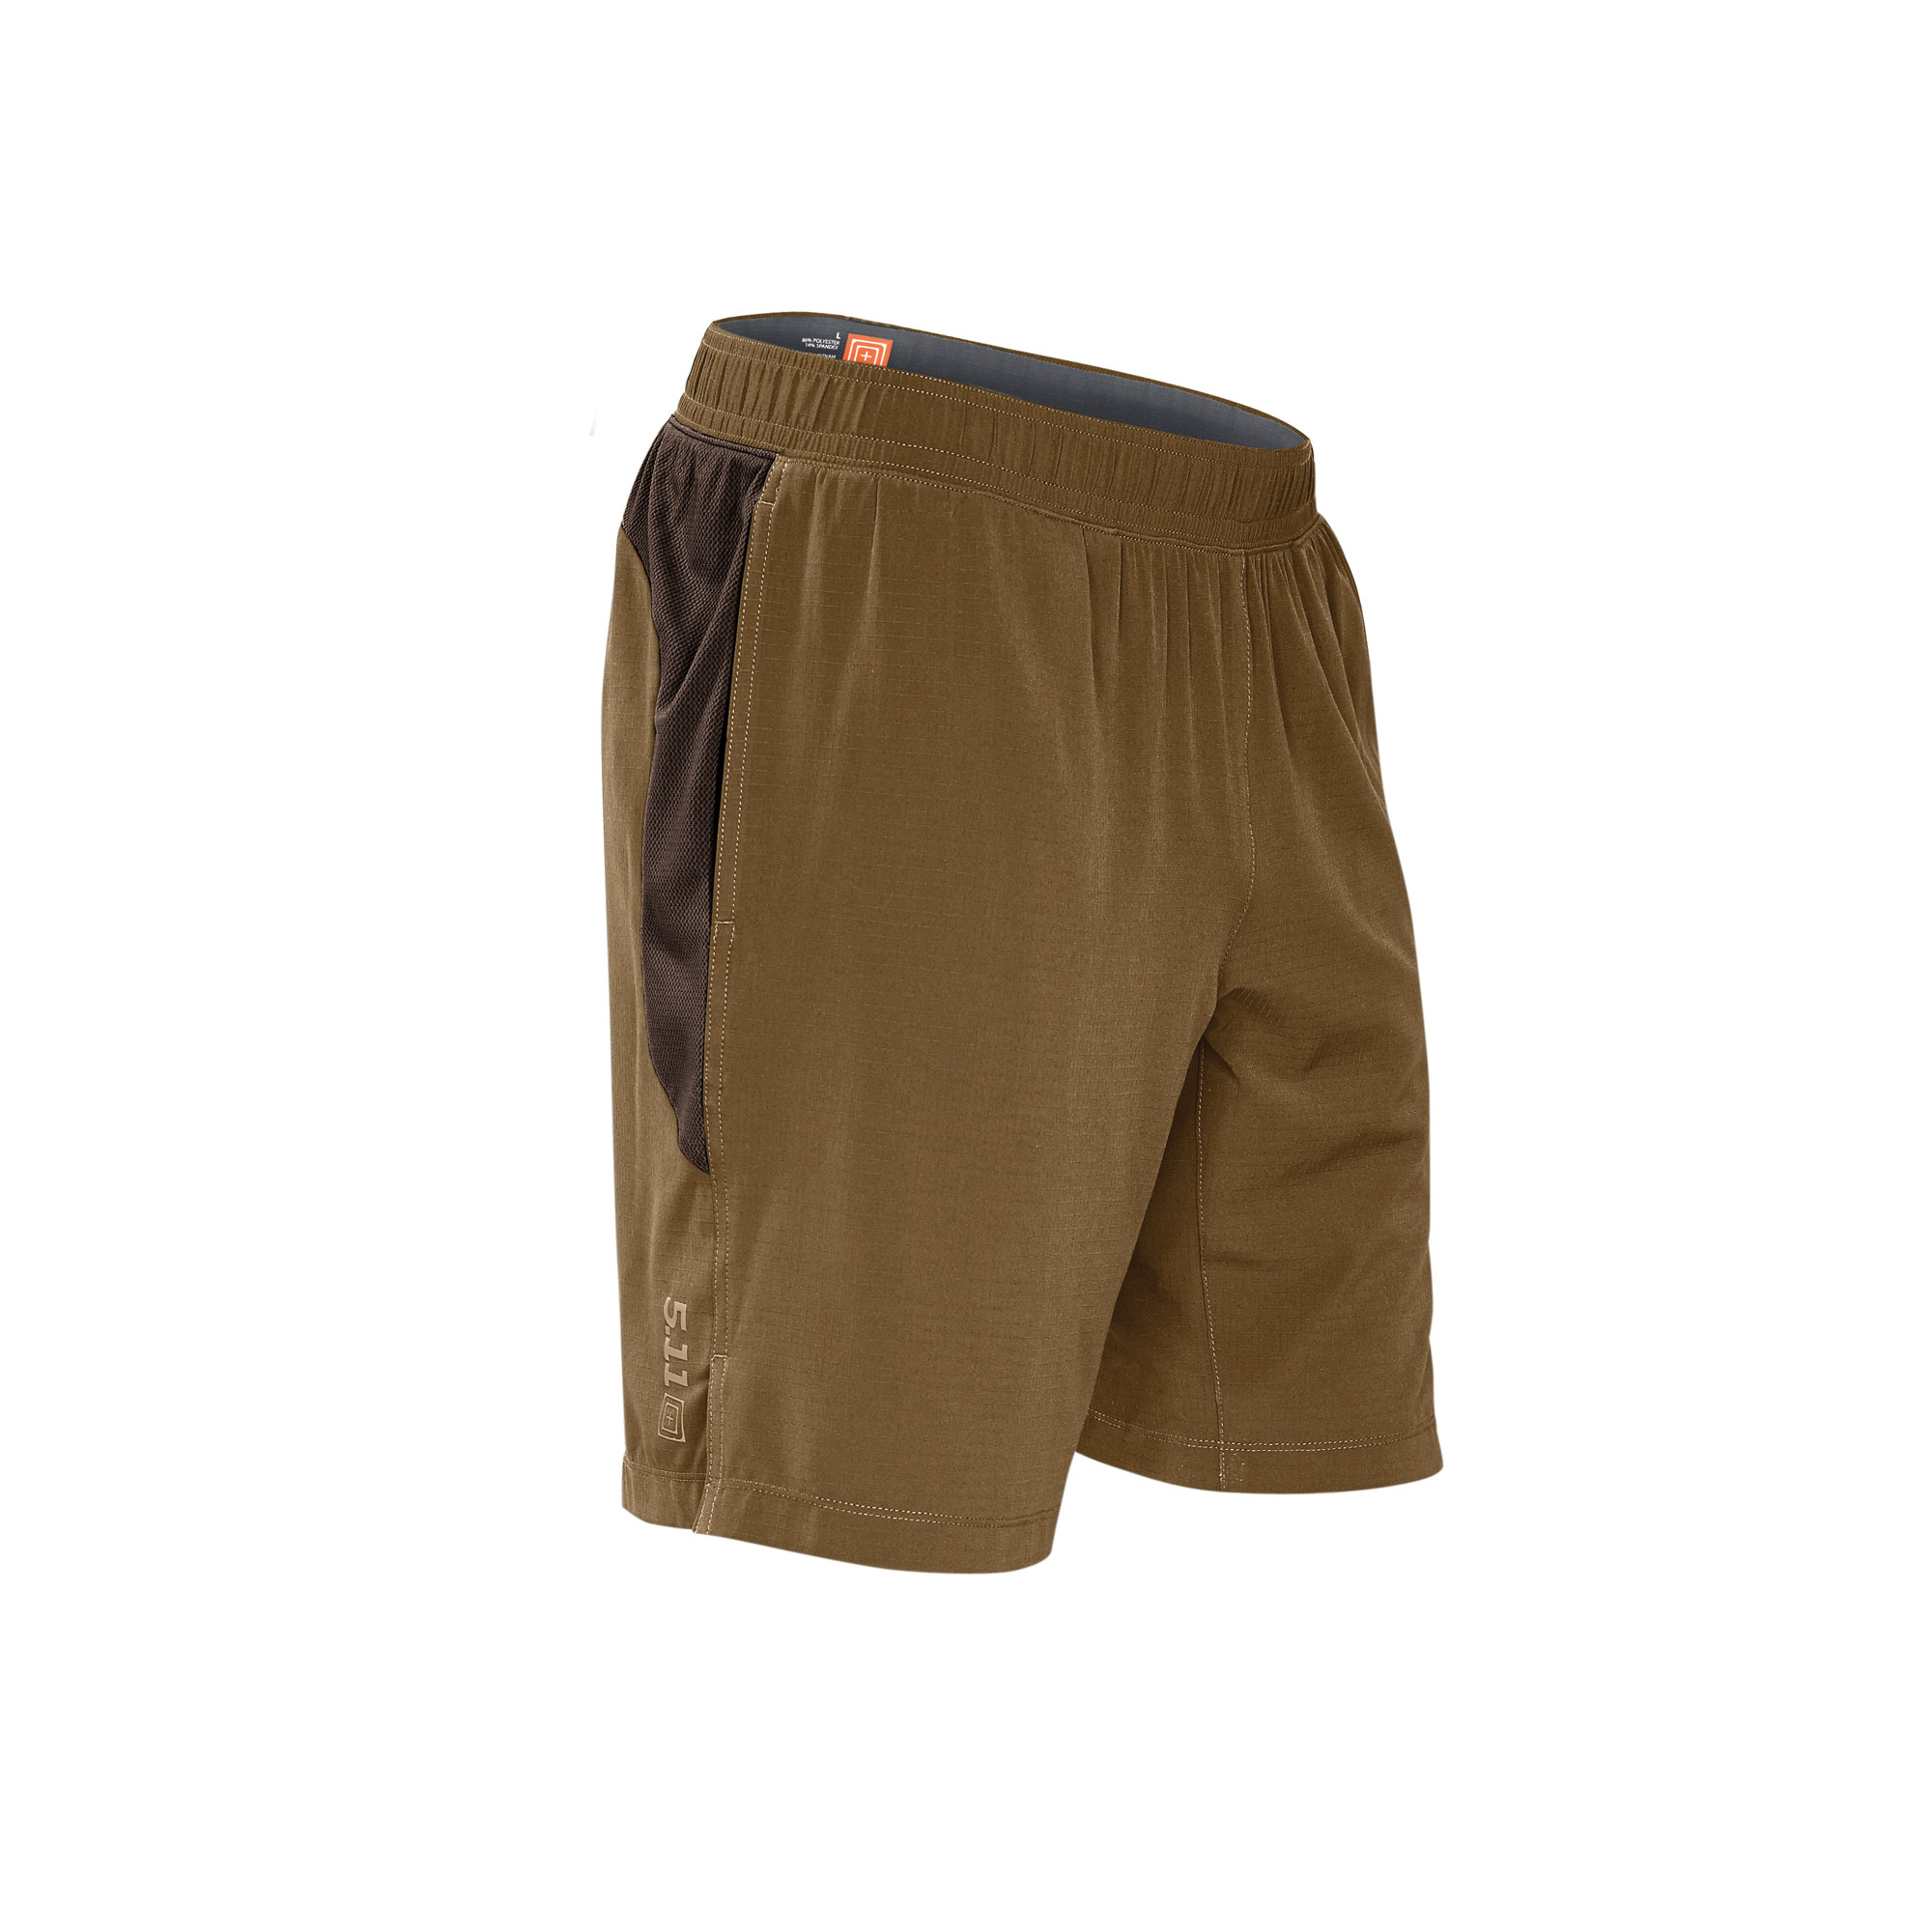 5.11 RECON Training Shorts - Battle Brown